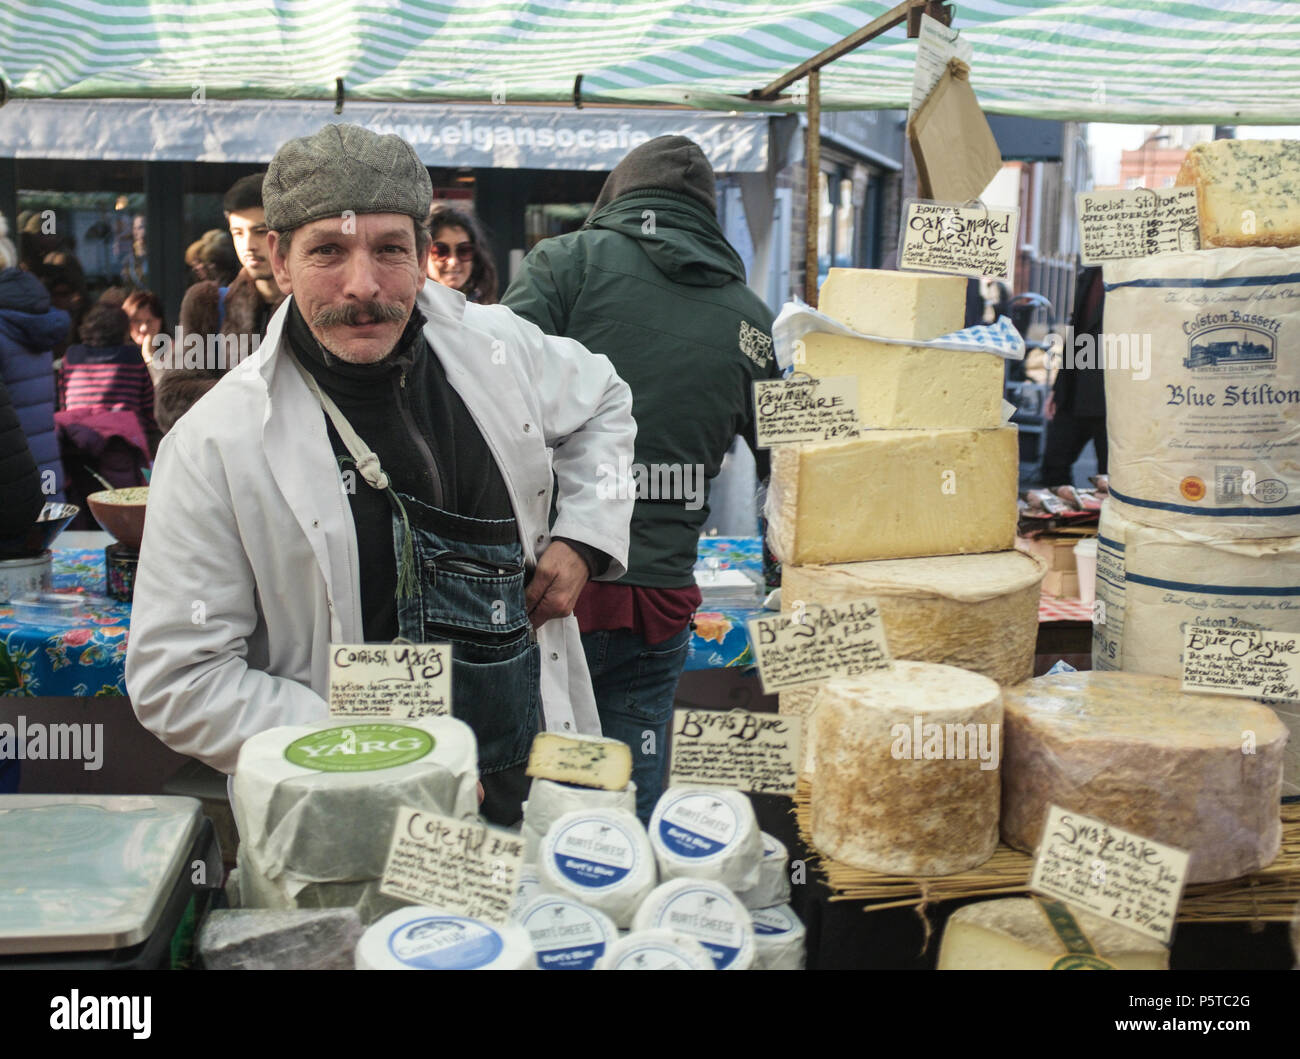 Charming Moustached Man Selling a Variety of Handmade Artisan Cheeses at Broadway Market in Hackney, London, England, Europe. Stock Photo